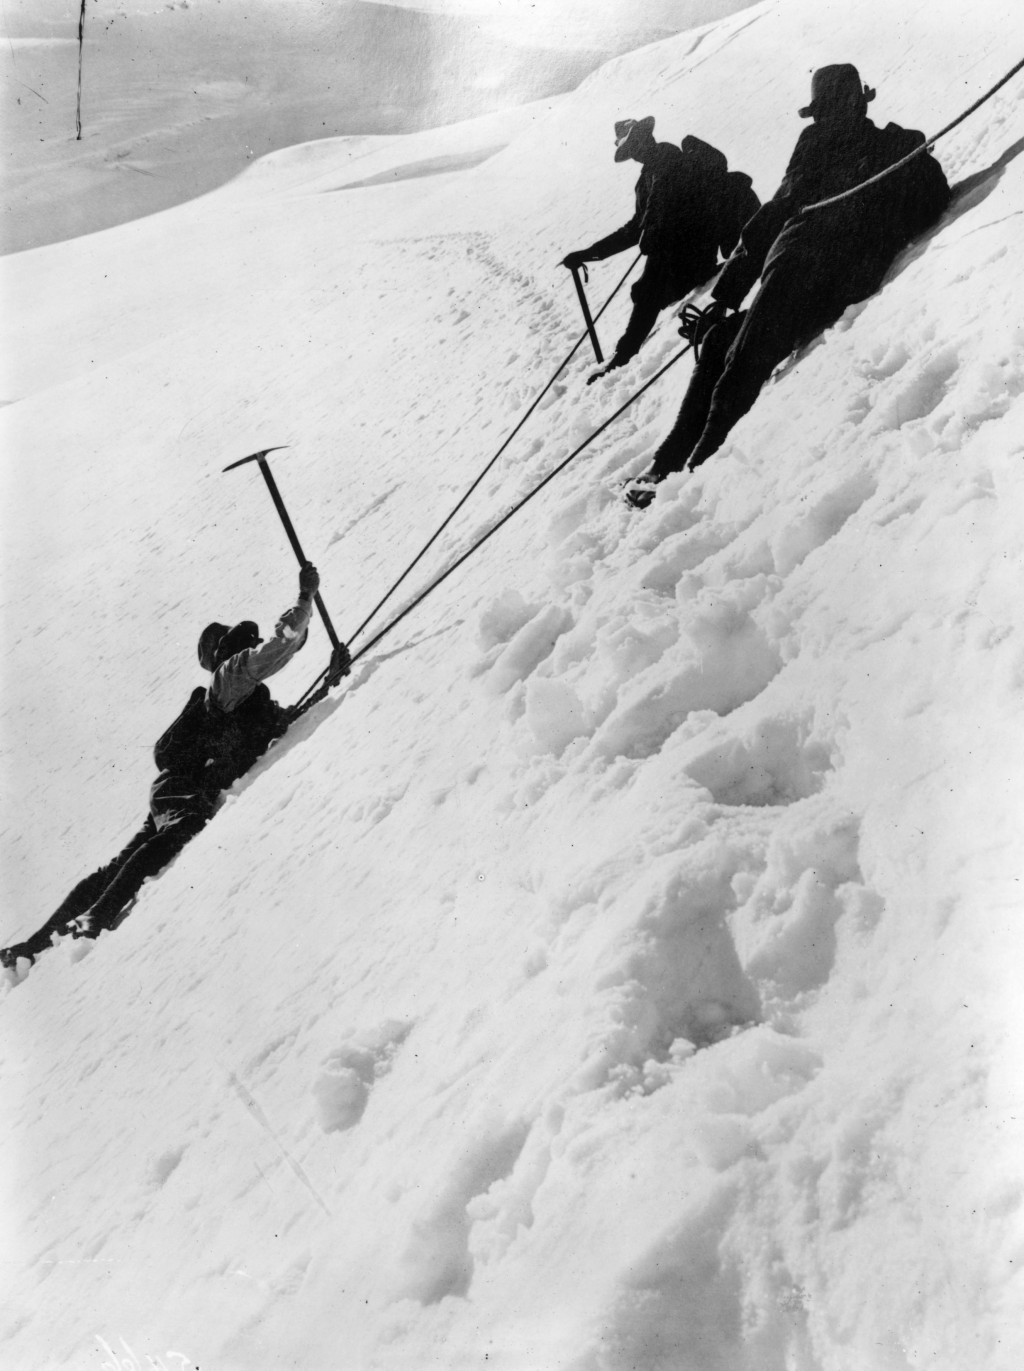 December 1910:  Climbers using ropes and pickaxes to climb a snowy bank in the Alps.  (Photo by Topical Press Agency/Getty Images)